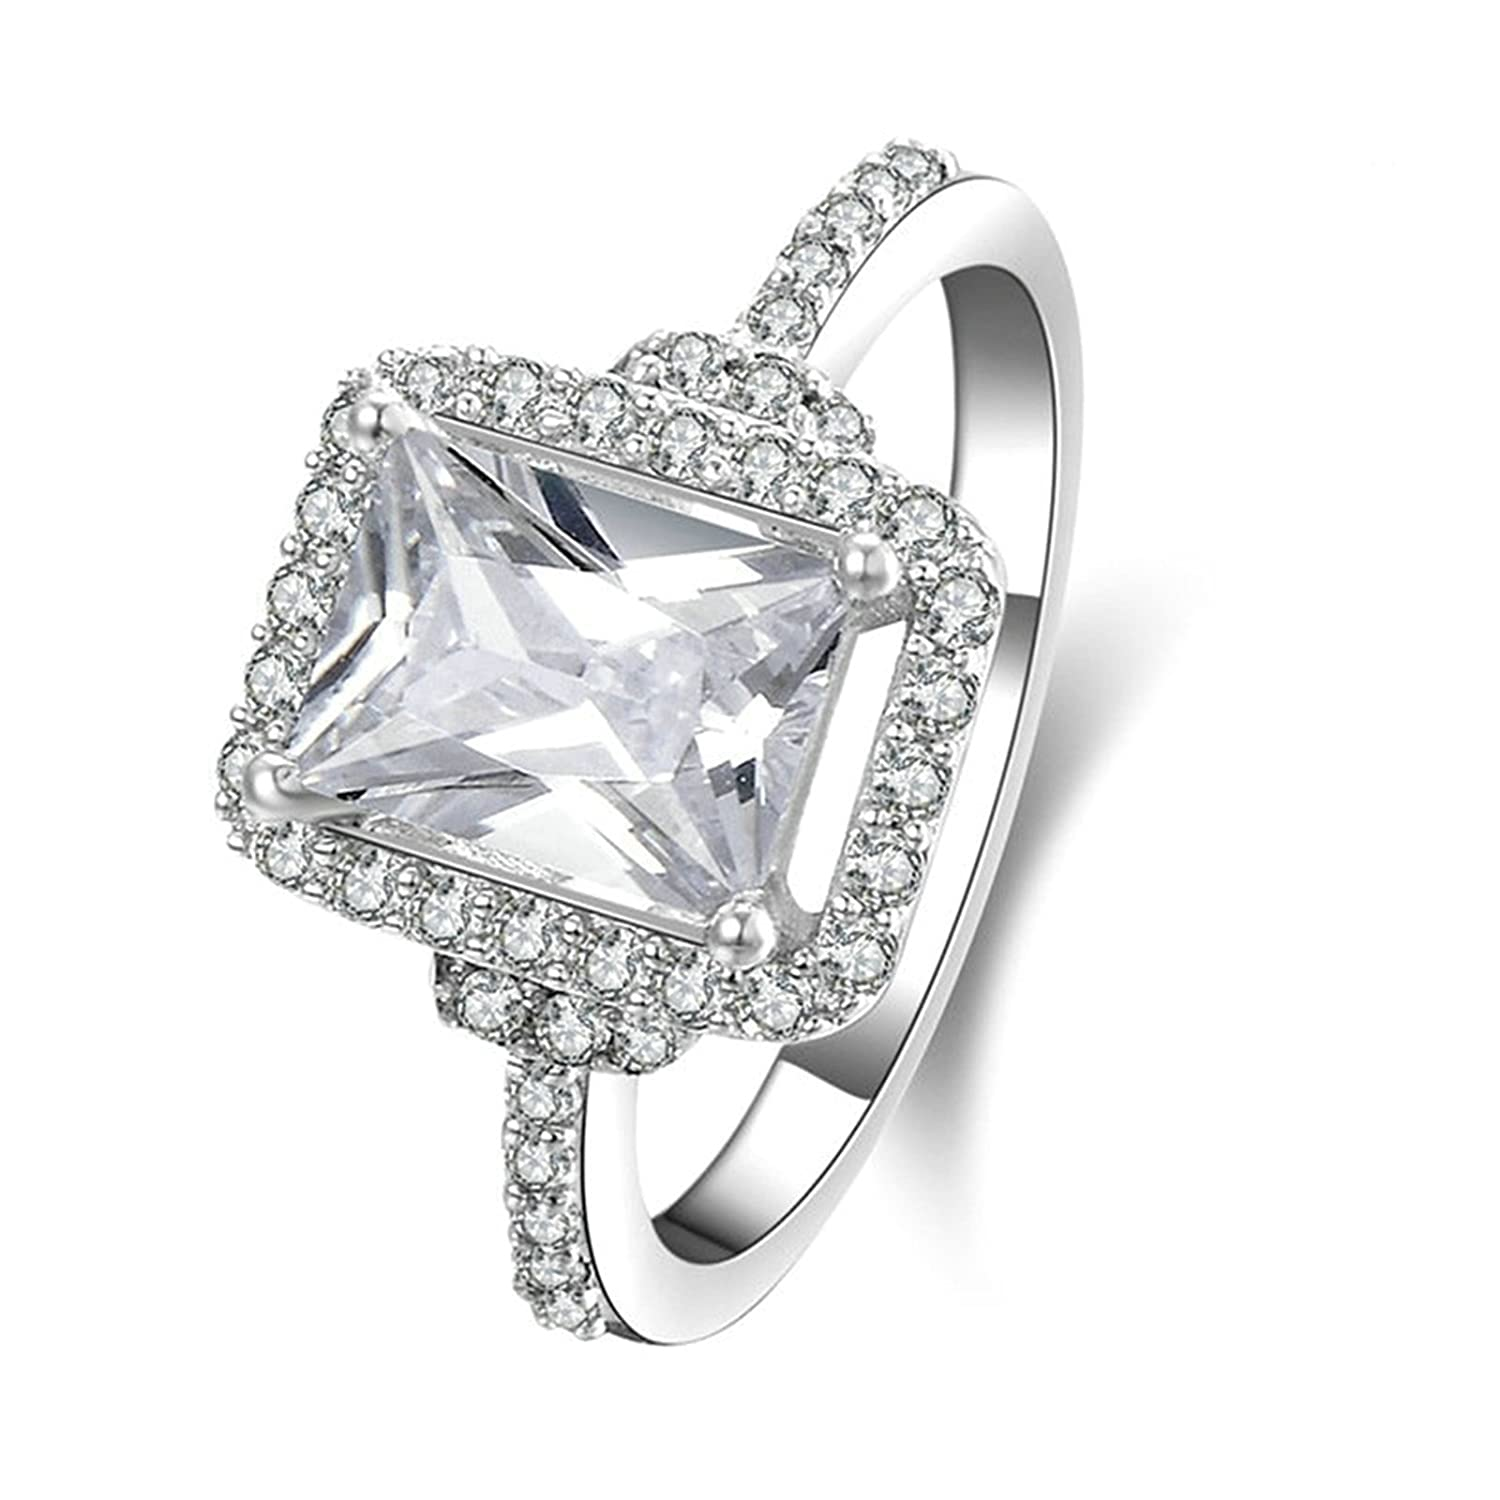 3a232f1925ff0 Amazon.com: Aooaz Jewelry Wedding Ring Silver Material Square Ring ...